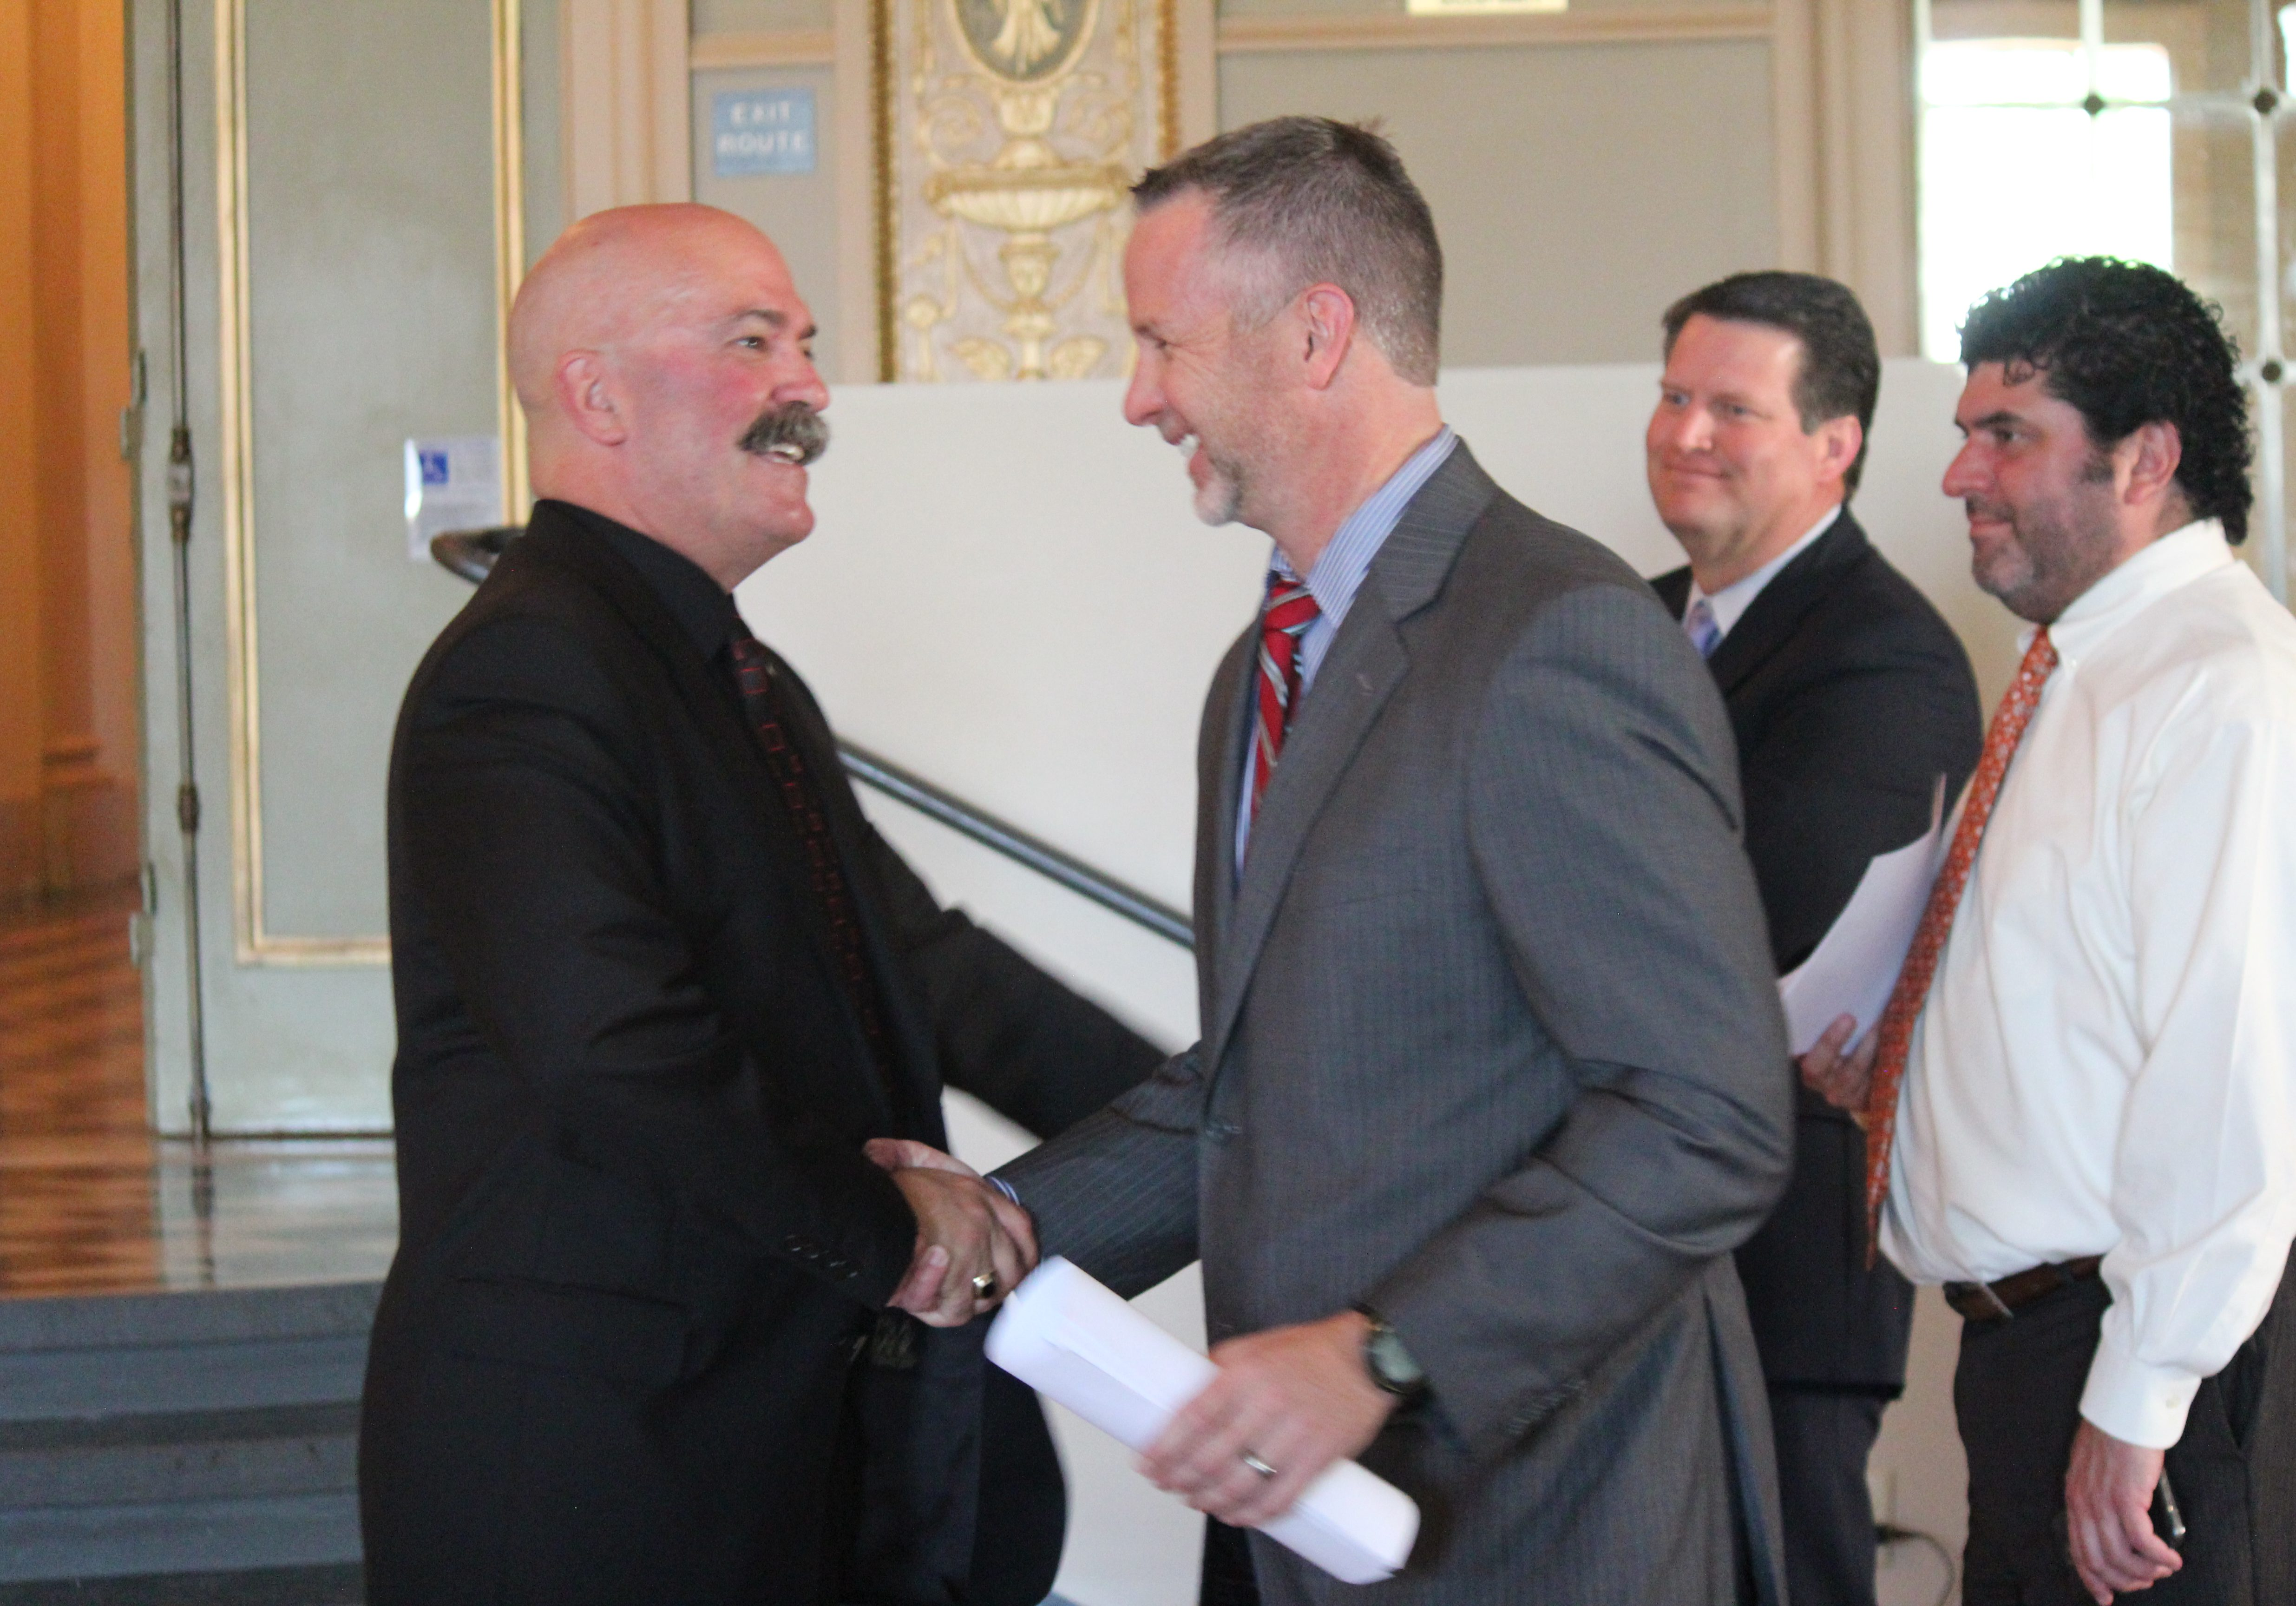 Two male members of the california trucking association shake hands.